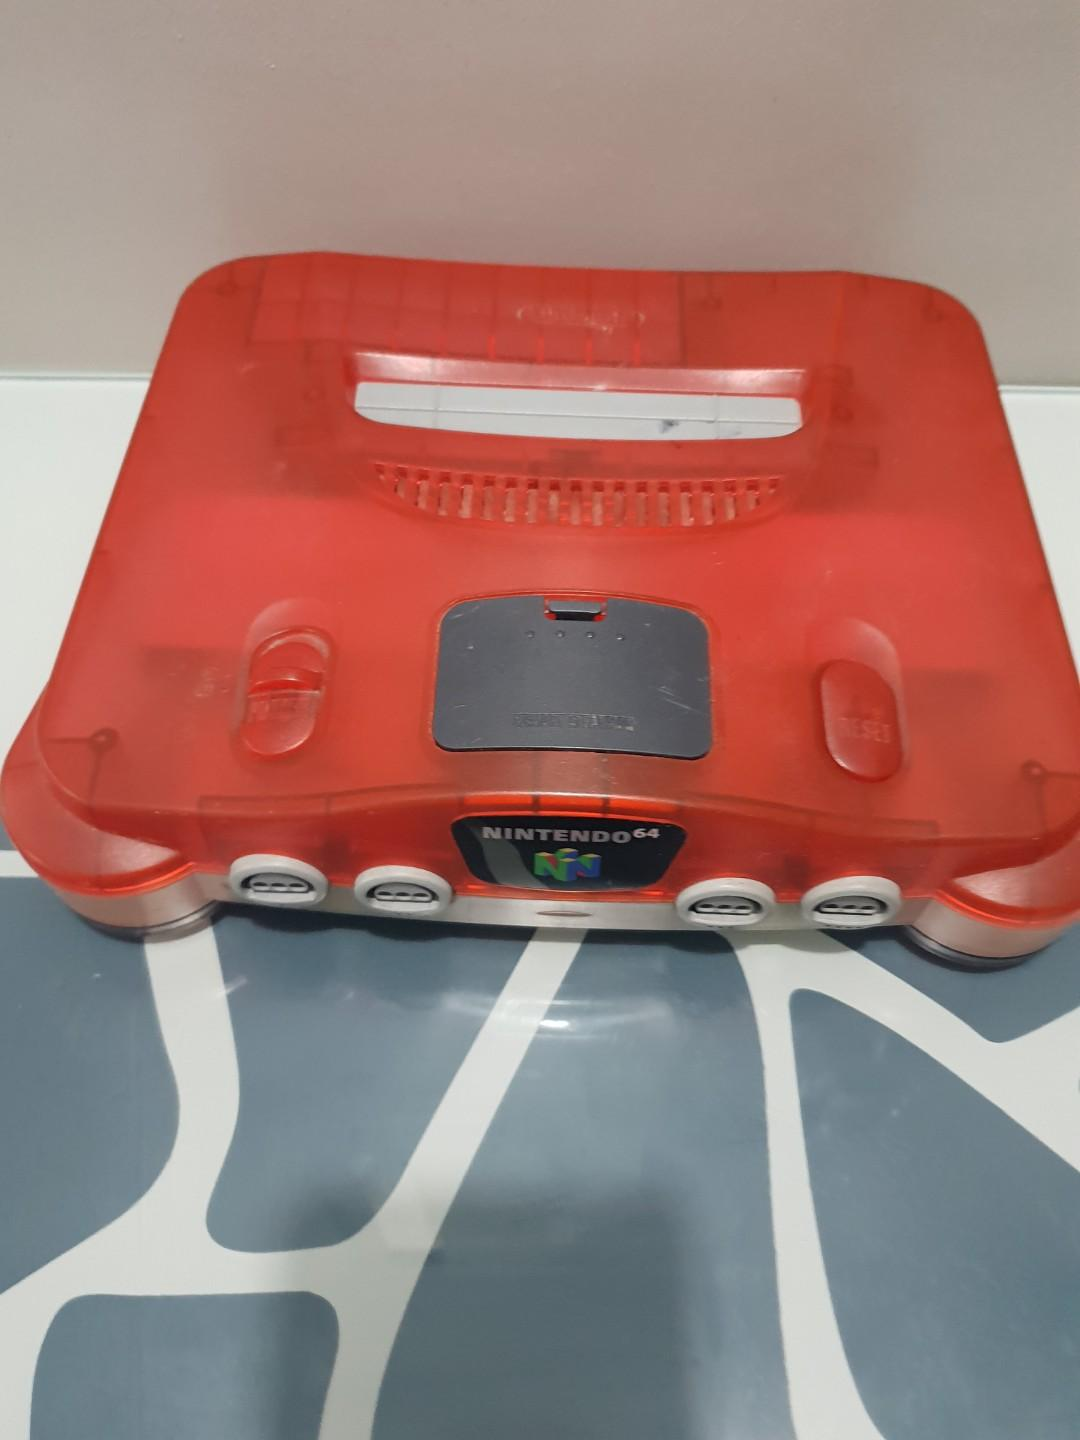 Limited edition red n64 jap with 220v aus adaptet or 110v jap. Red controller av cable